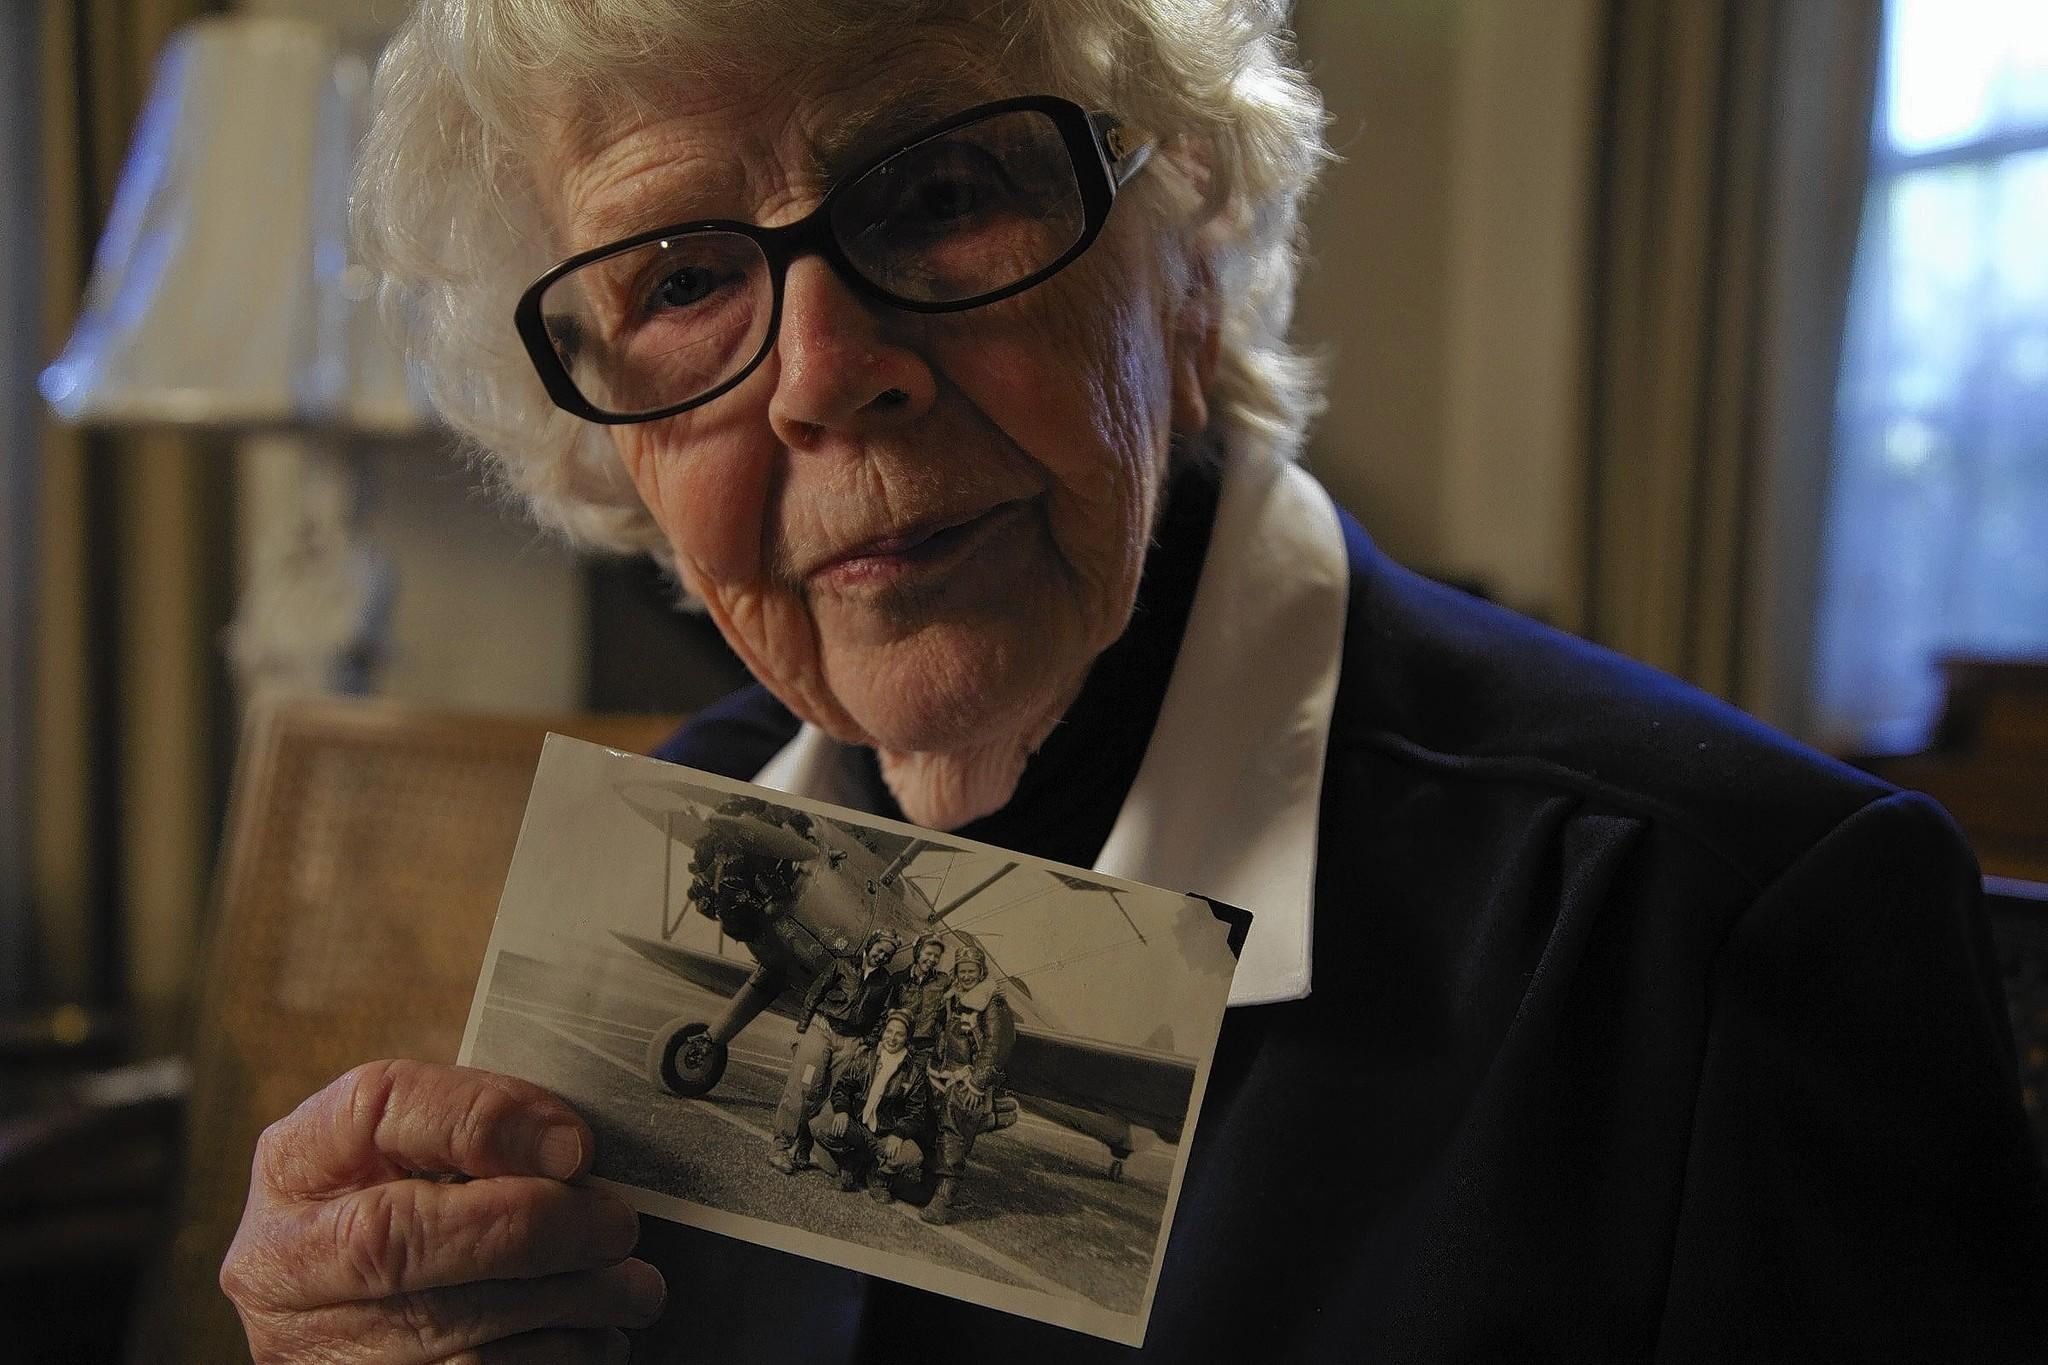 Flora Belle Reece holds a photo from her days as a WASP, training to be a WWII pilot in 1943. Now 89, Flora Belle is looking forward to riding in the Rose Parade on a float honoring the Women Airforce Service Pilots.